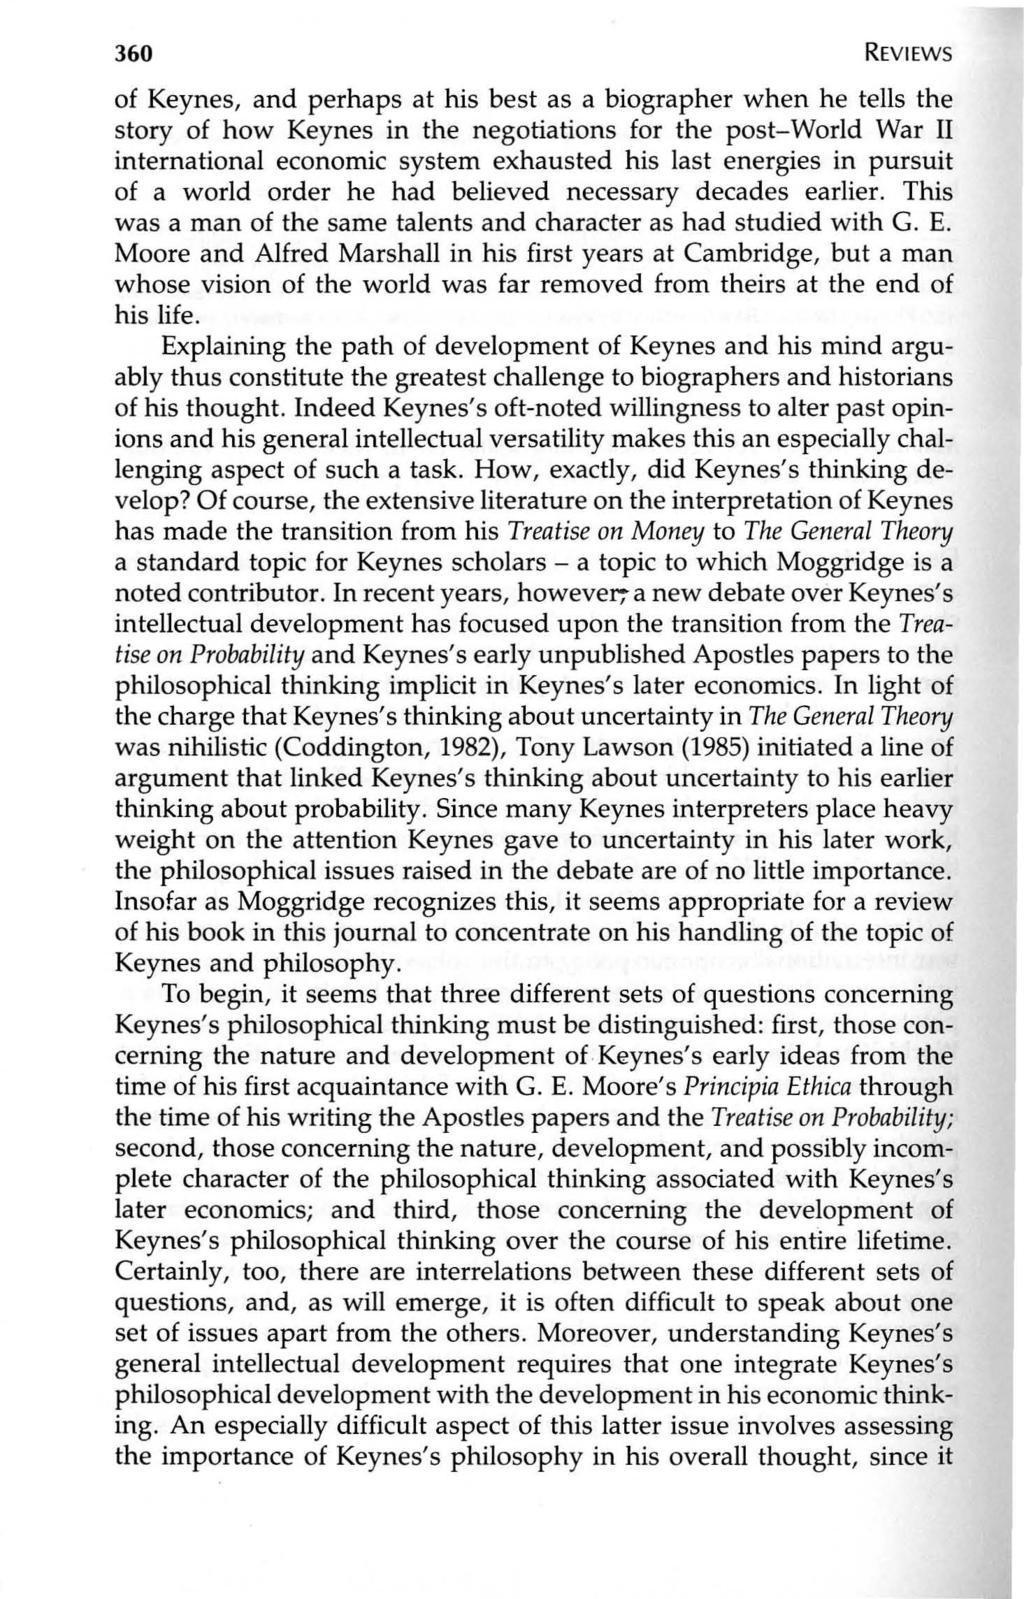 360 REVIEWS of Keynes, and perhaps at his best as a biographer when he tells the story of how Keynes in the negotiations for the post-world War II international economic system exhausted his last